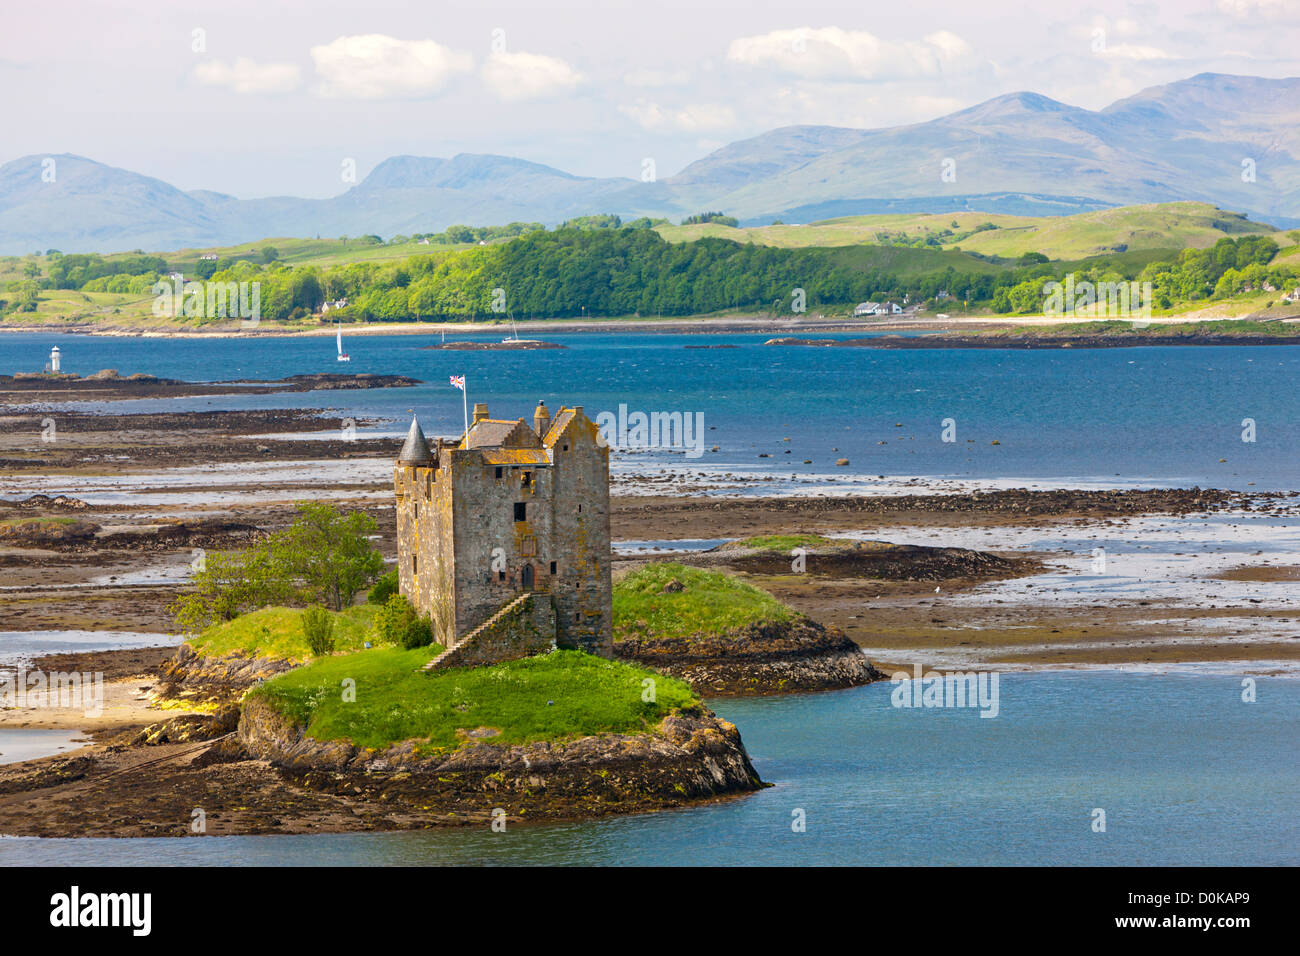 Castle Stalker which is a 15th century tower house on a tidal islet on Loch Laich. - Stock Image